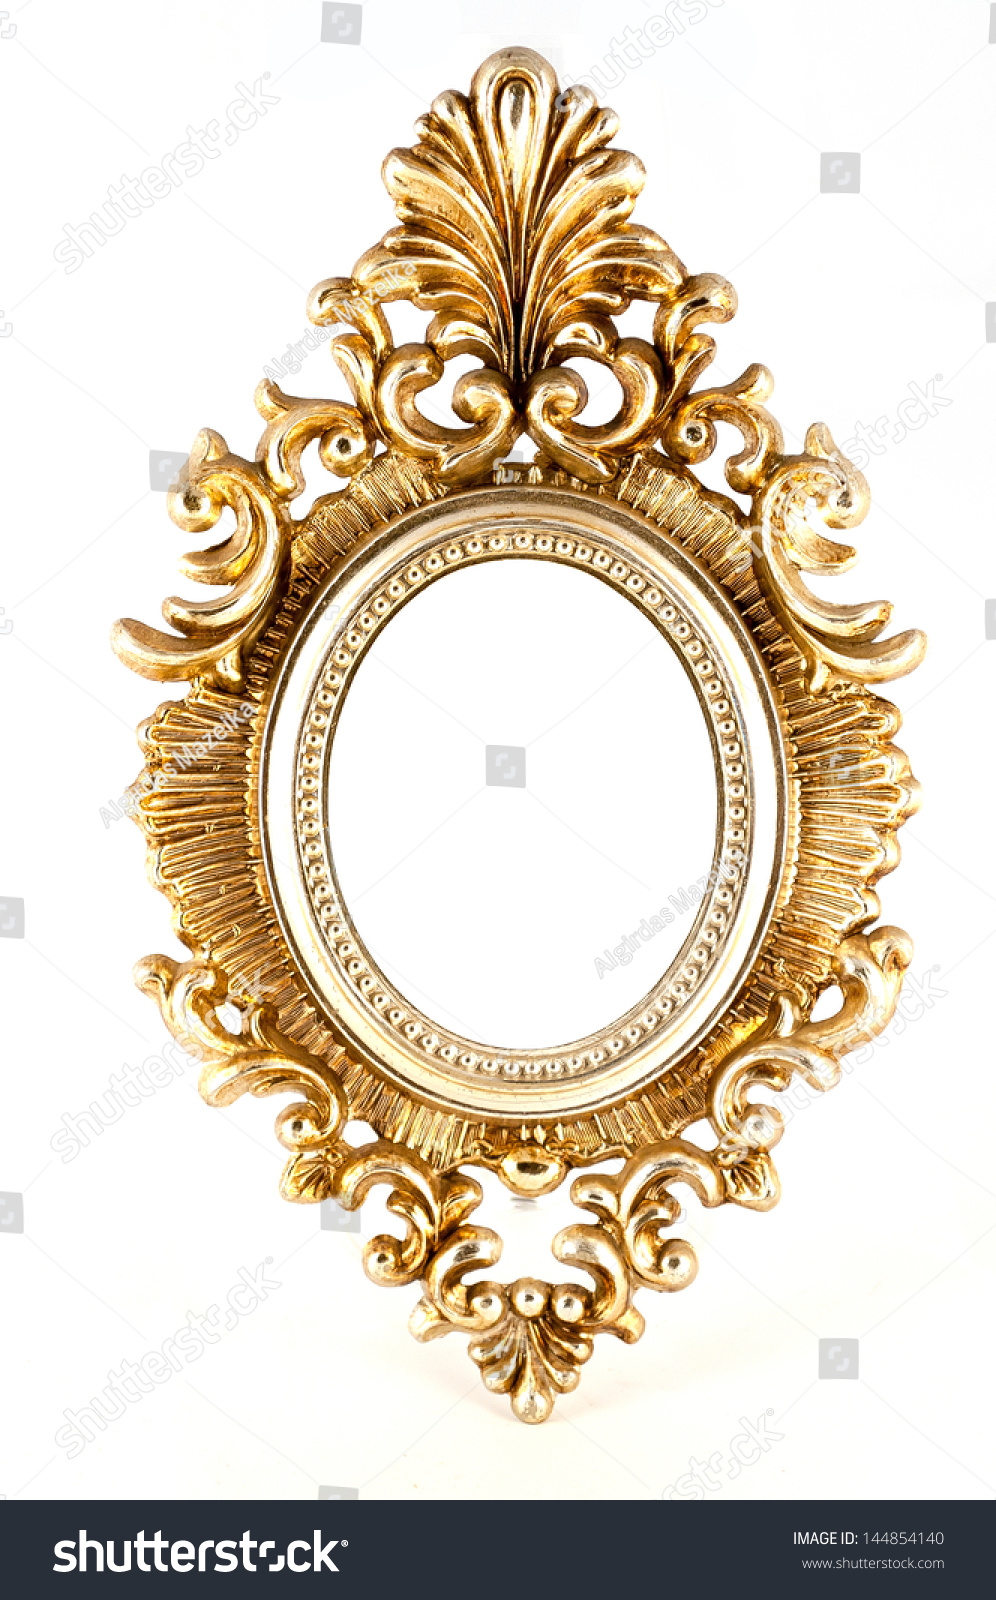 ornate gold oval frame in baroque style with an empty central oval white copy space for